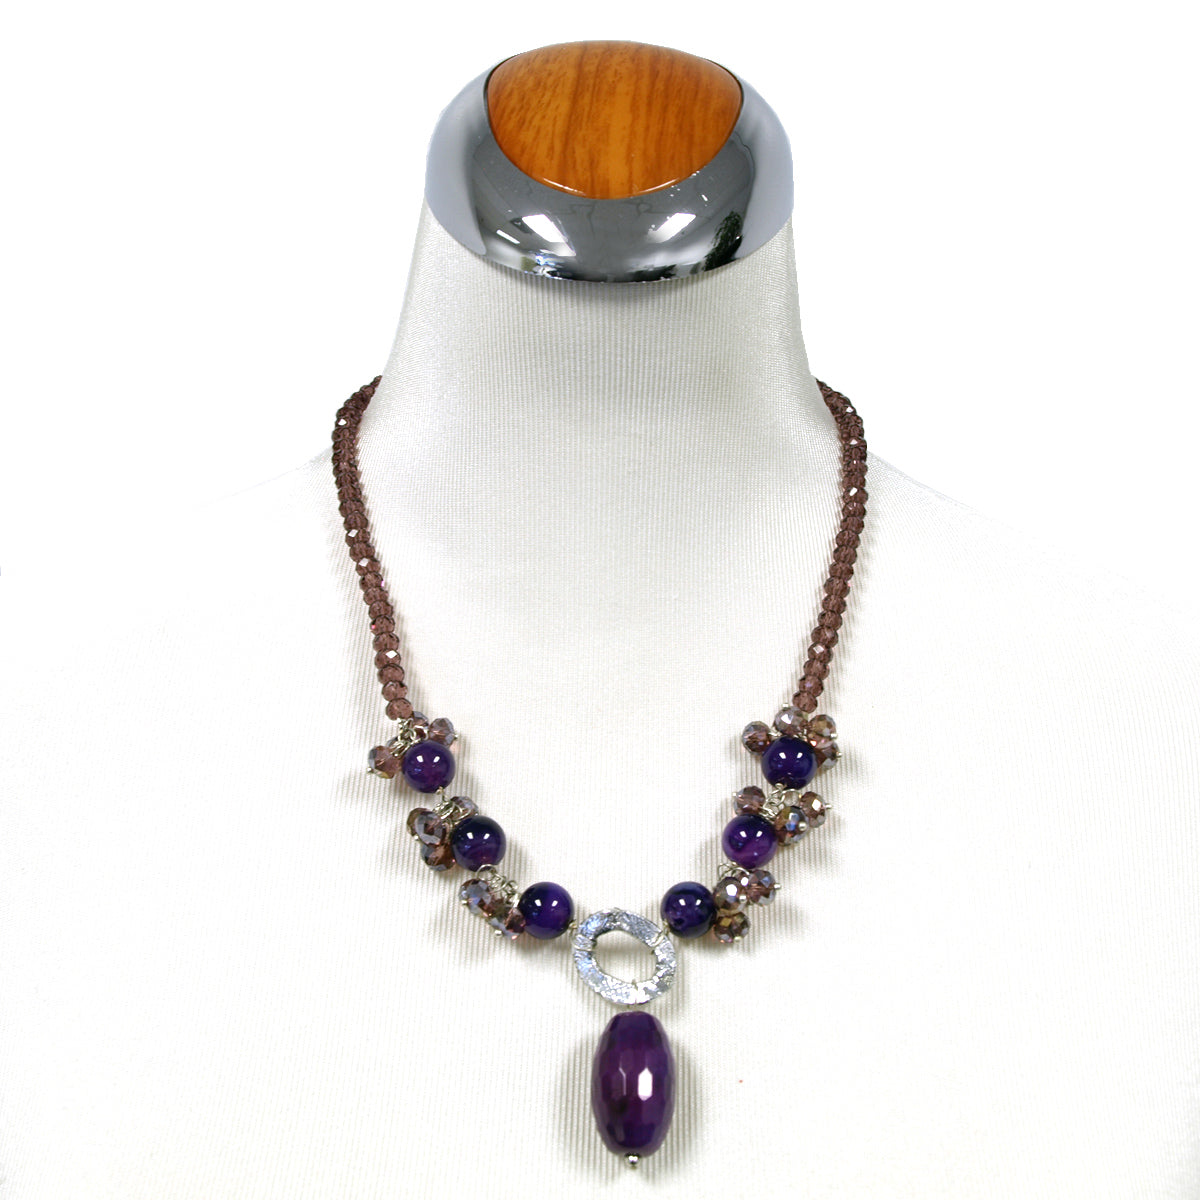 Purple Crystal and Agate Pendant Necklace, 19.5 inches